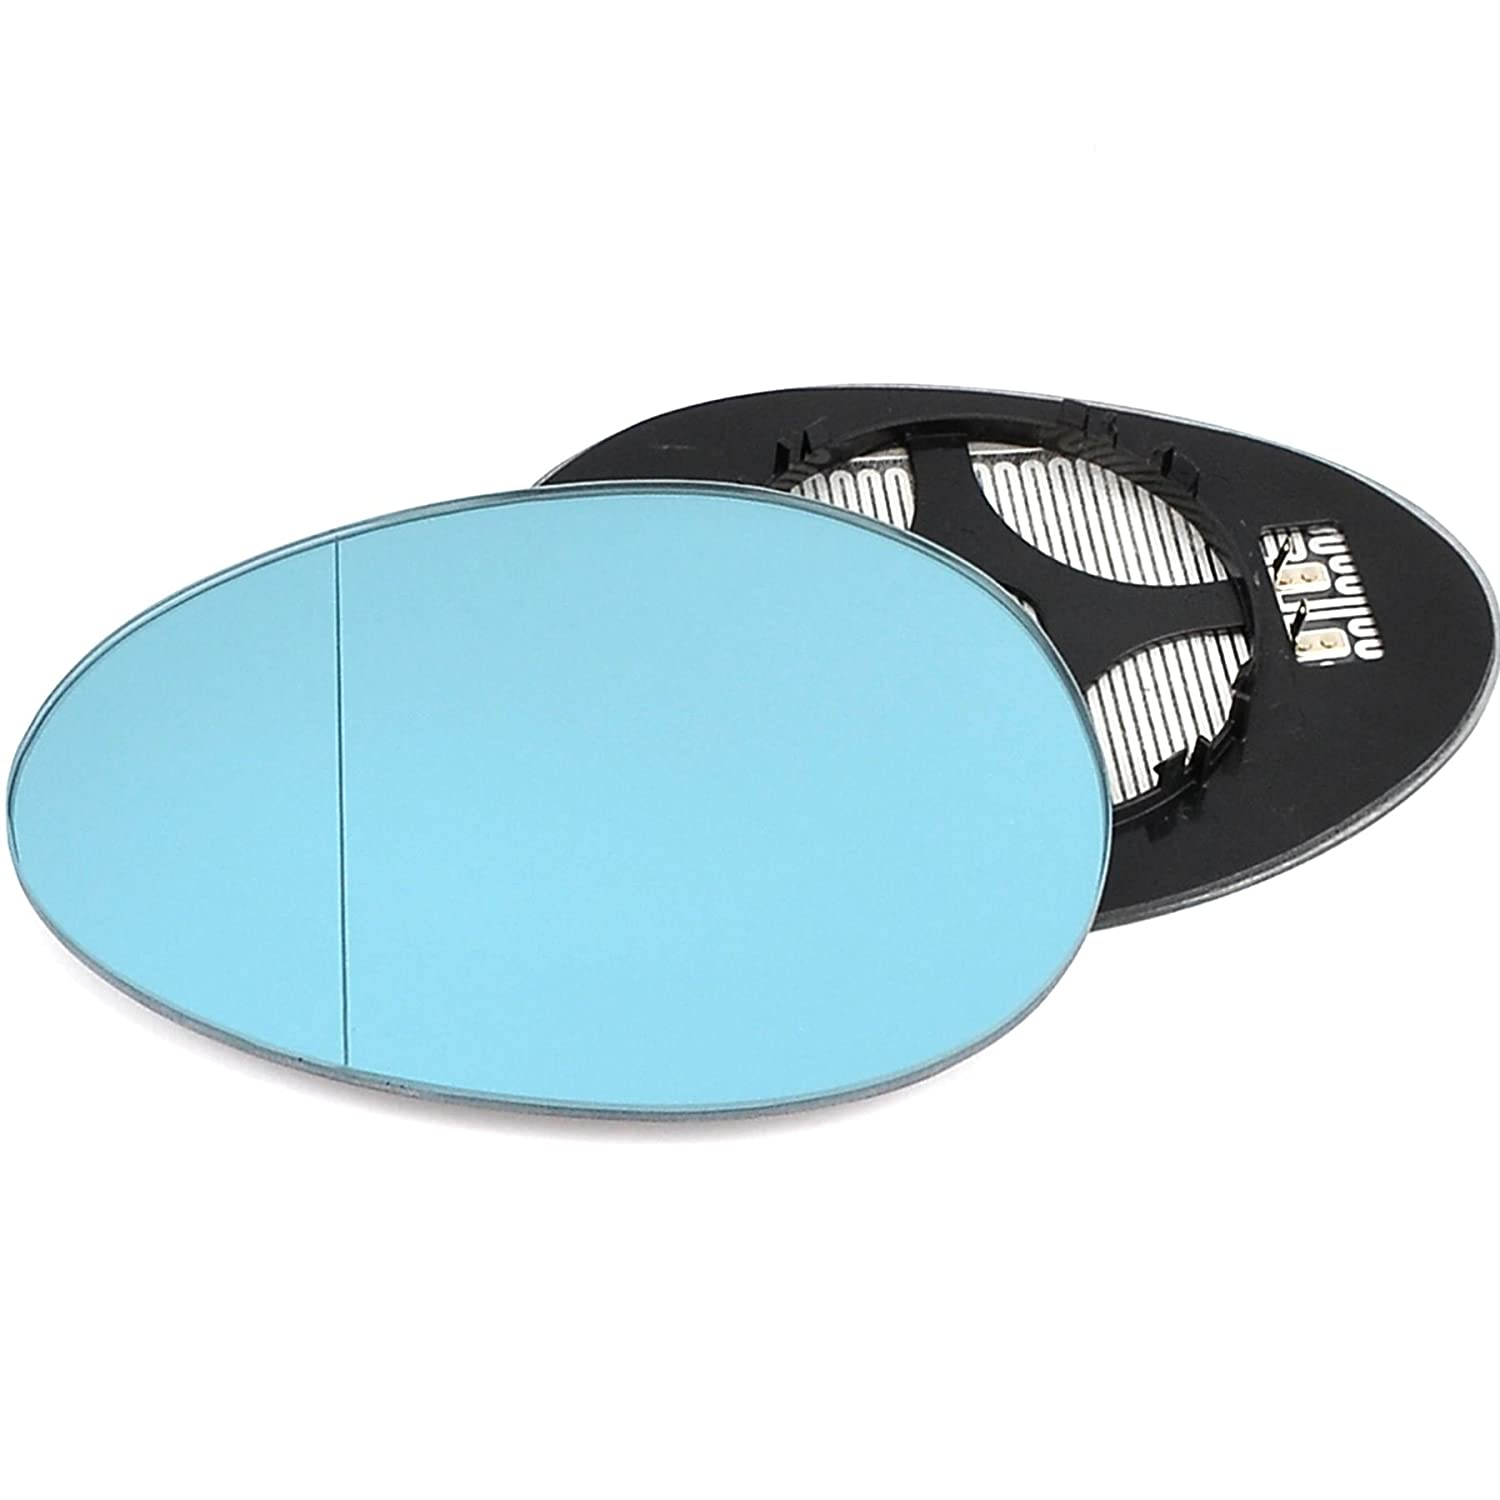 For Citroen C1 2005-2013 Driver right hand side wing door mirror convex glass with backing plate